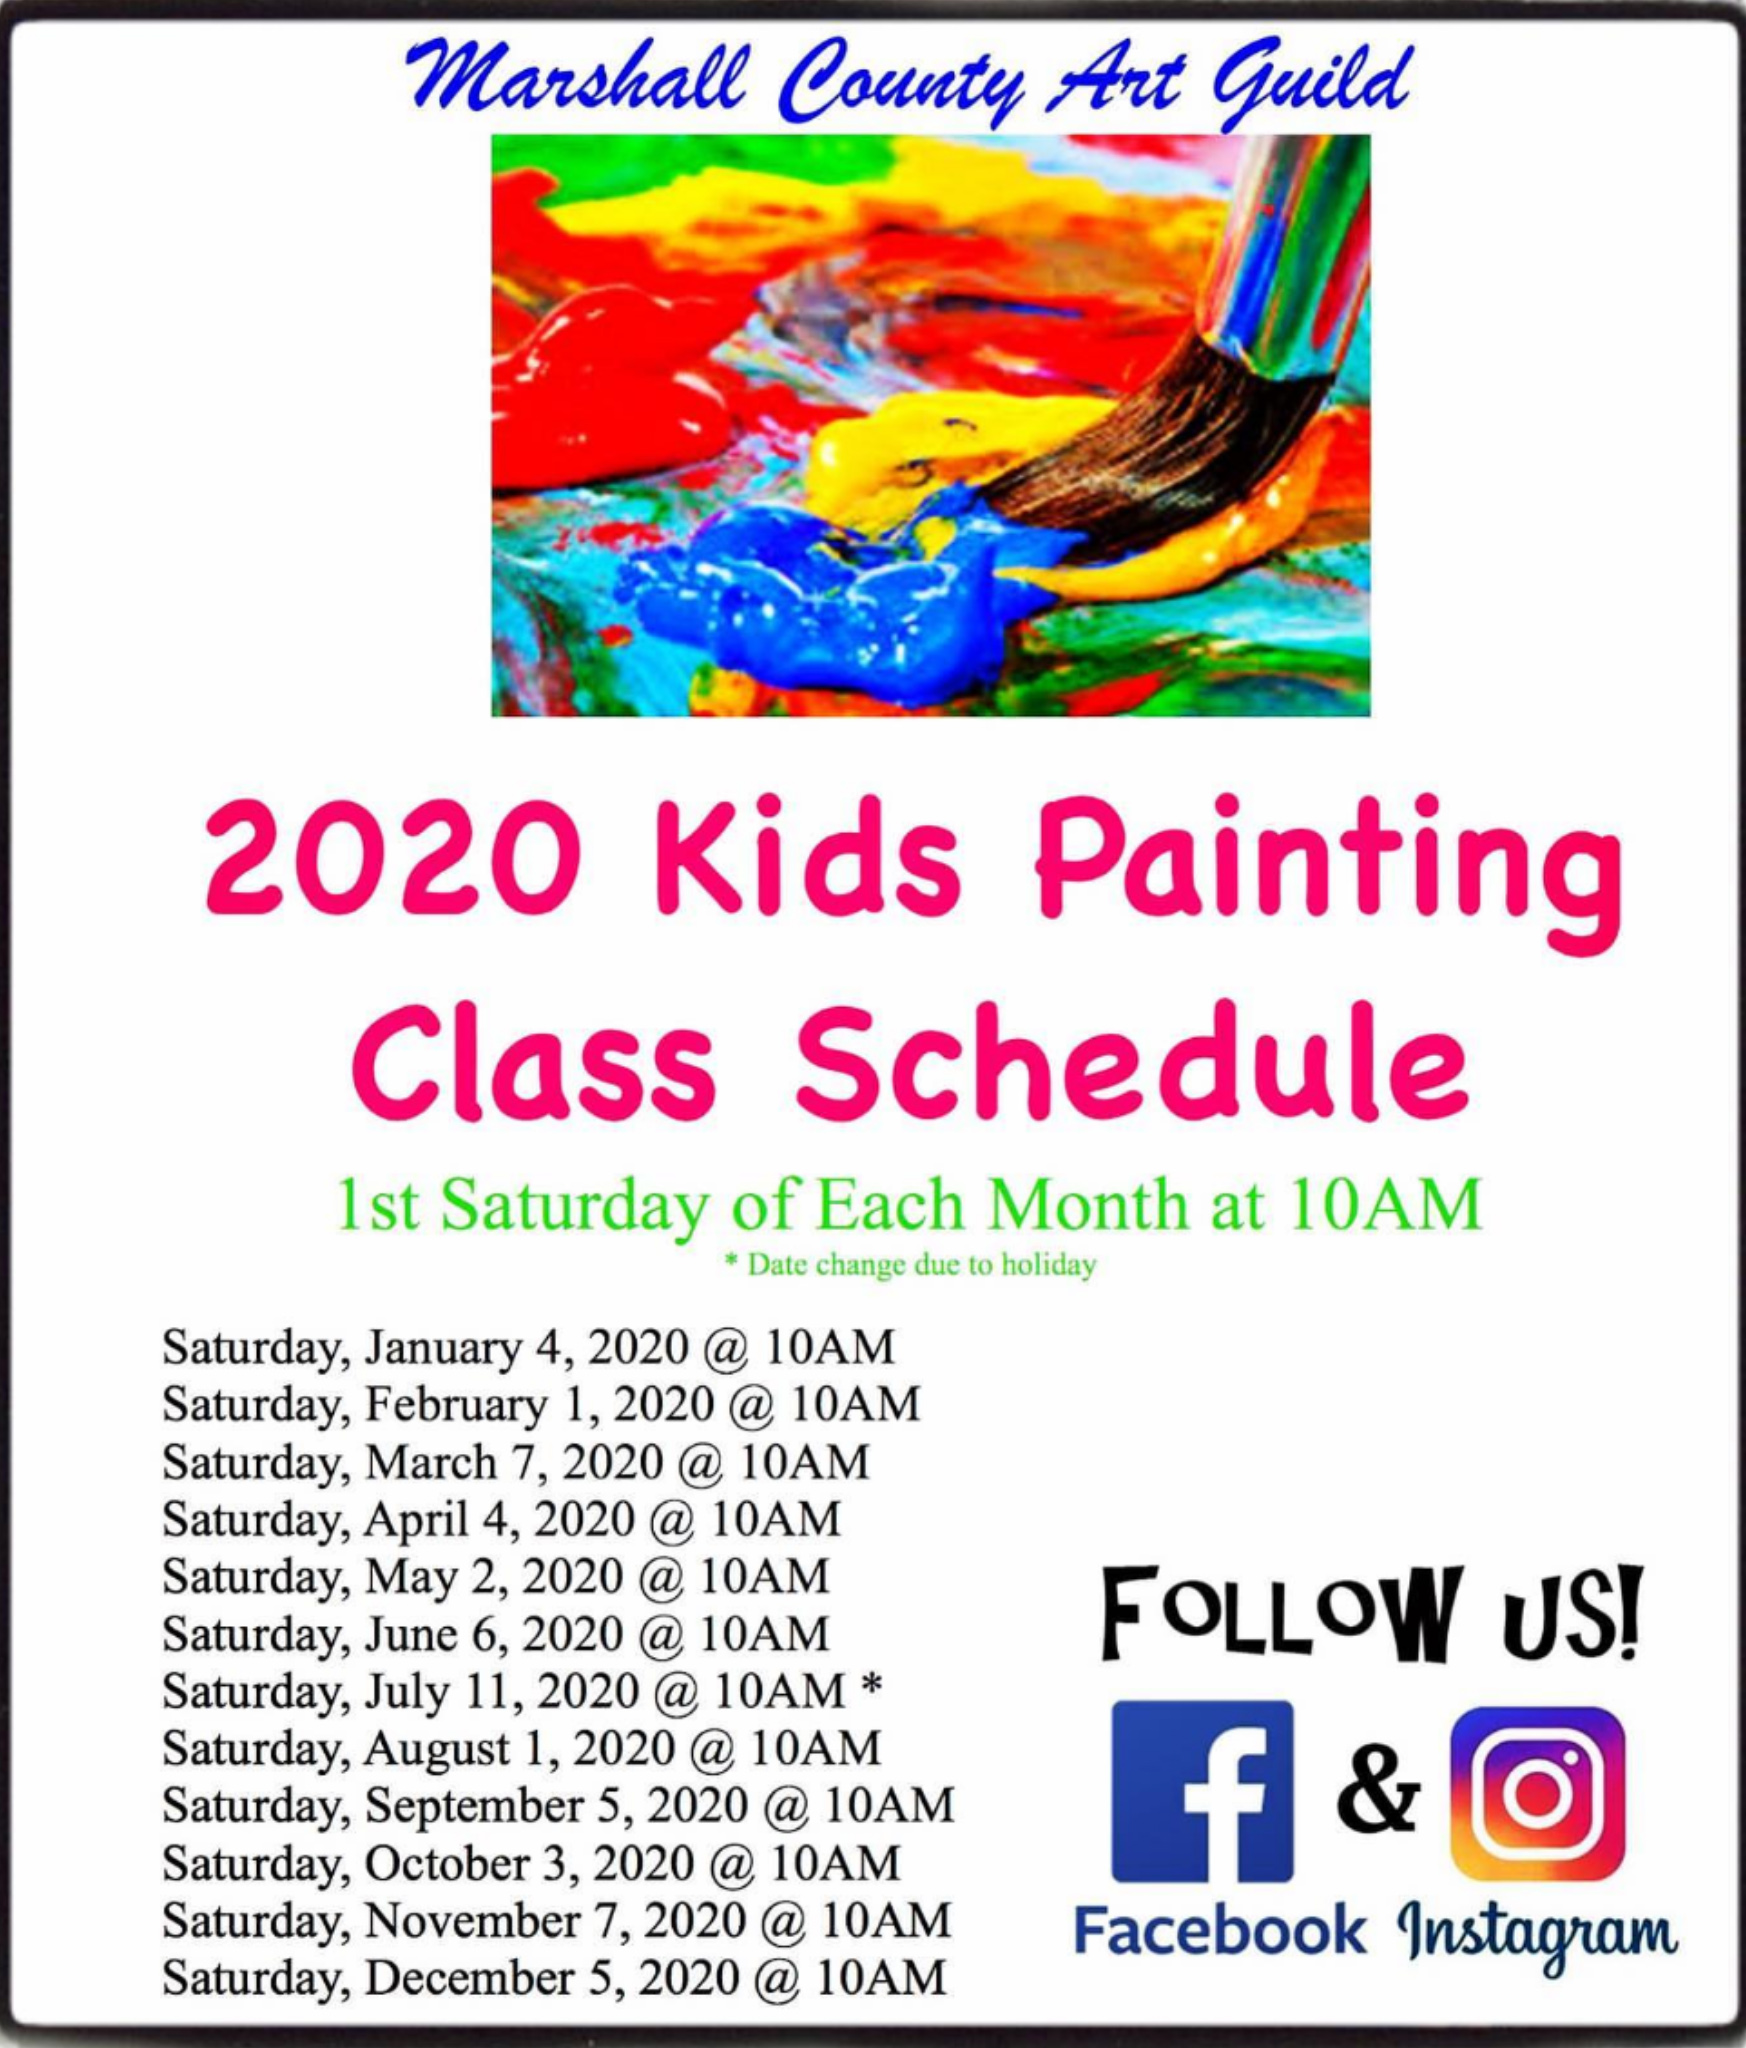 Kids Painting Class Schedule